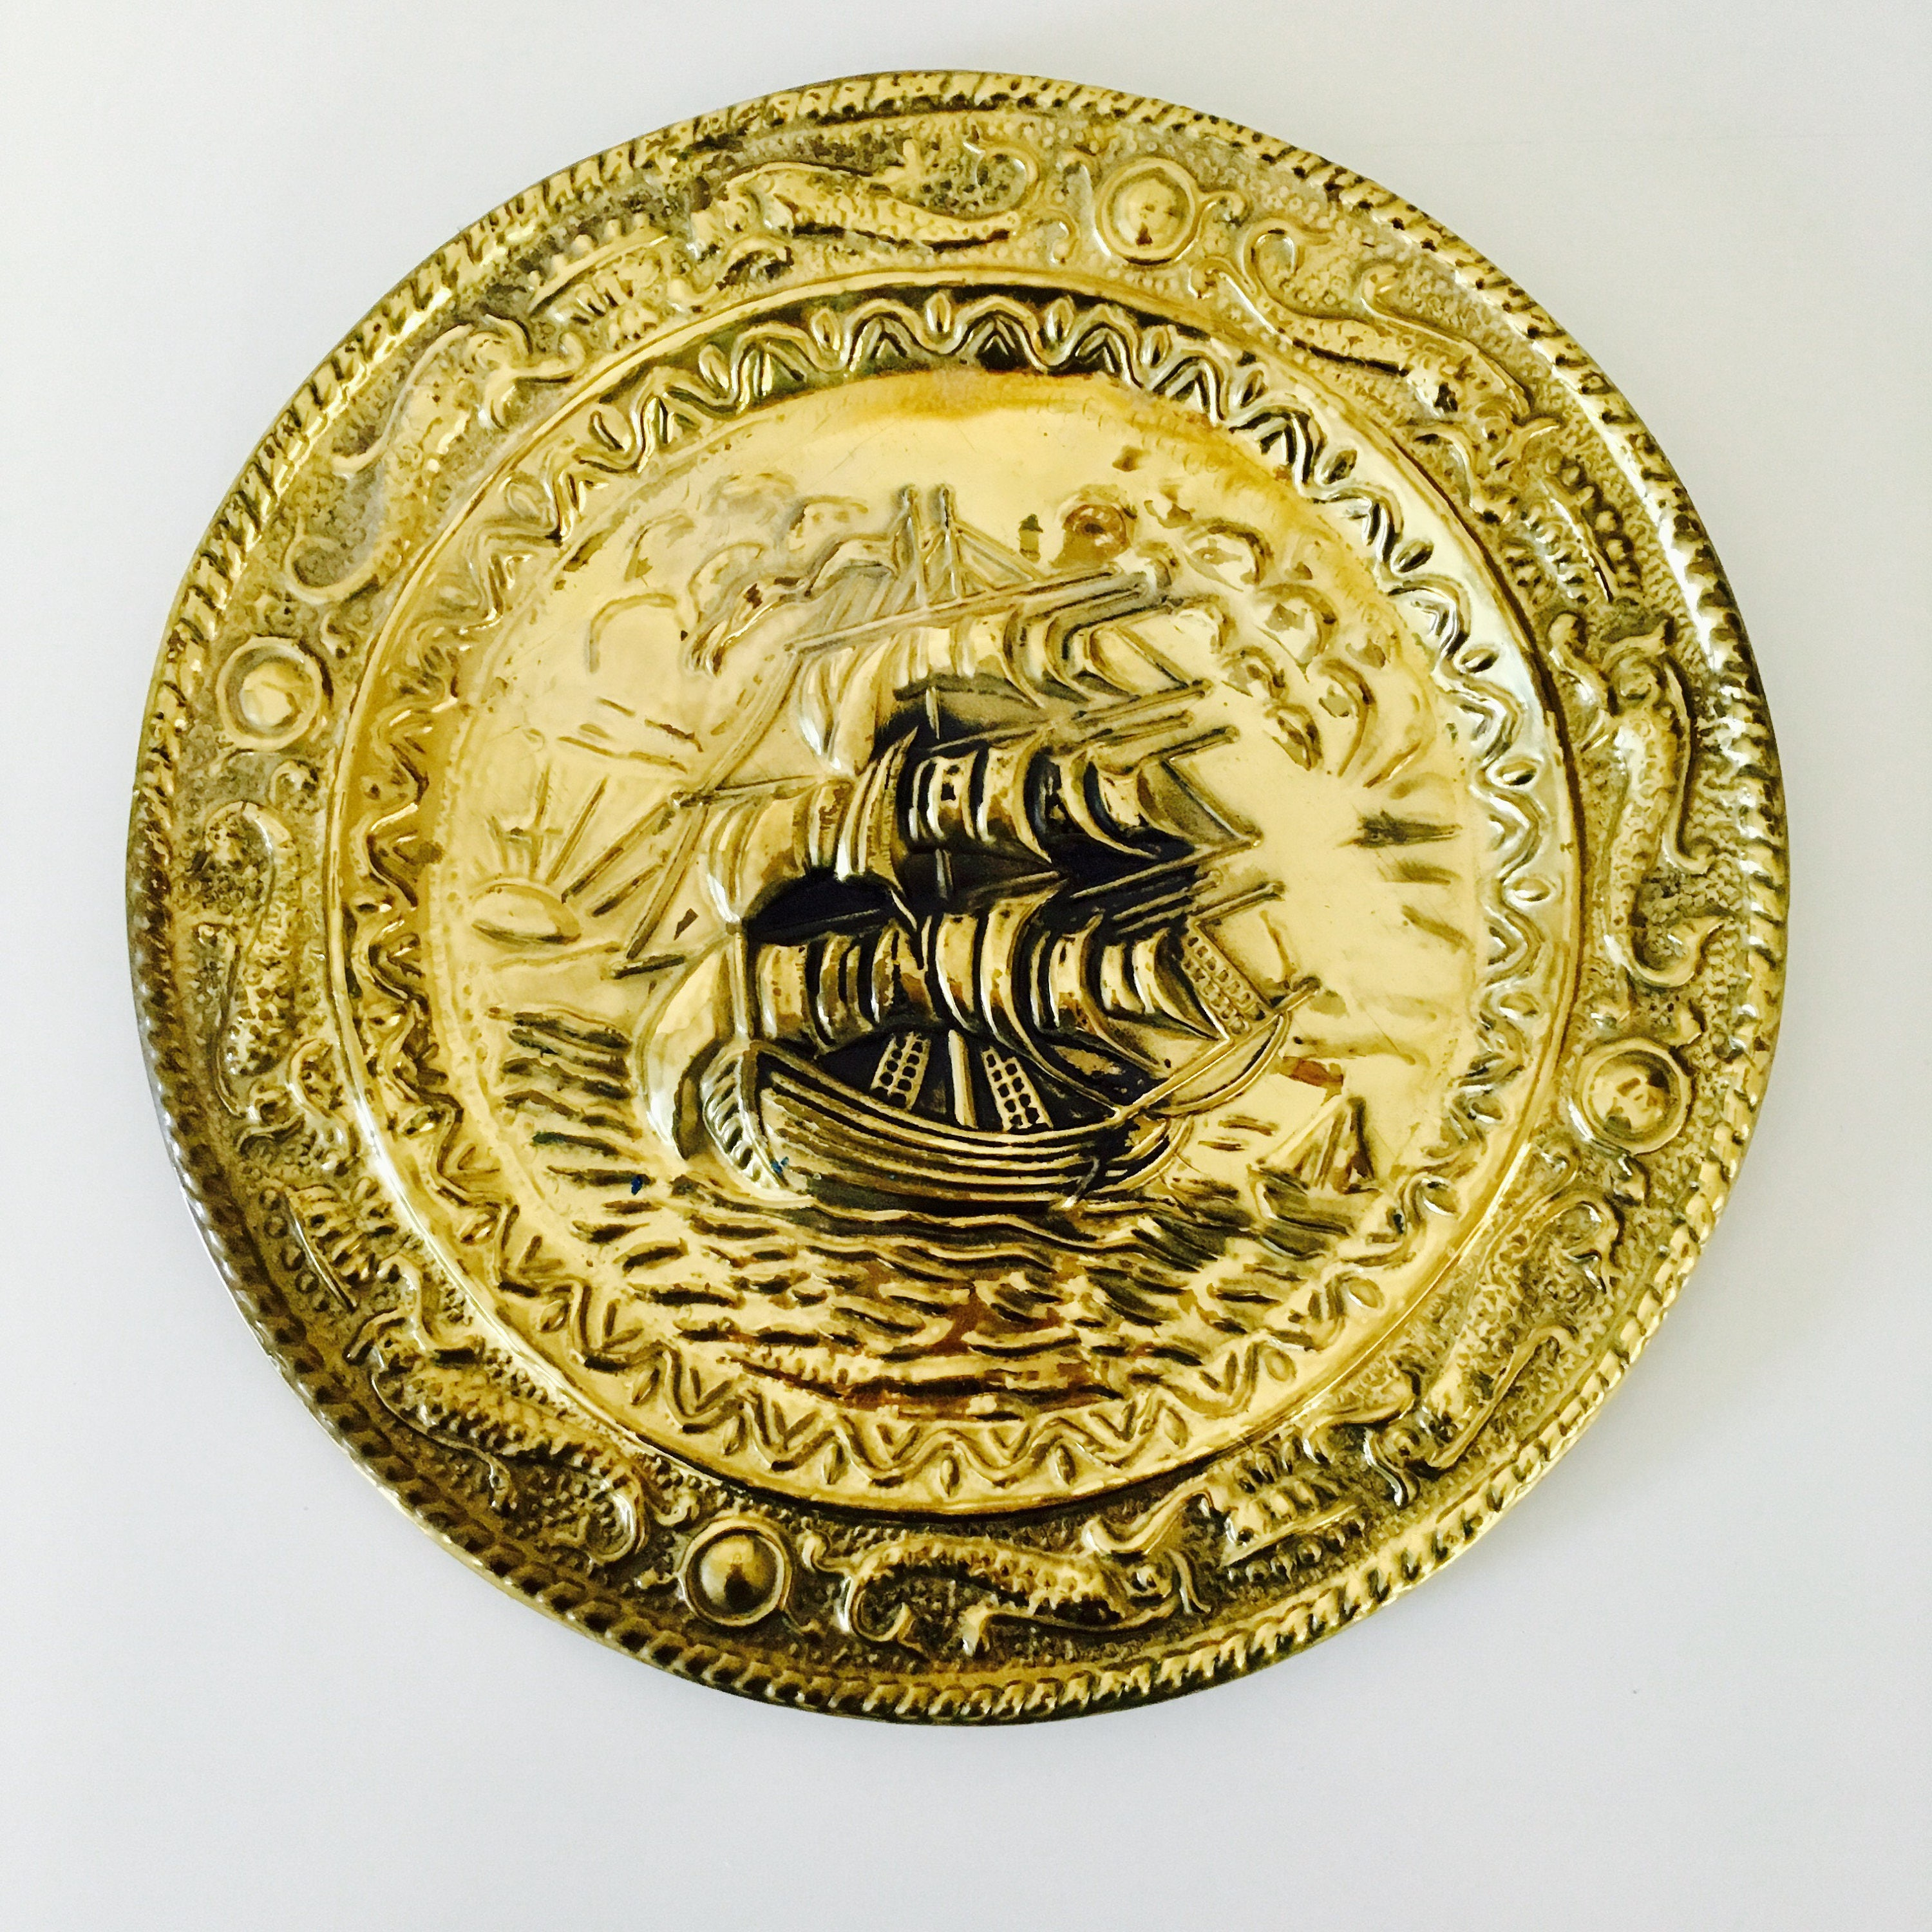 Vintage Brass Wall Plate Gold Tone Nautical Themed 9 1/2 Diameter ...